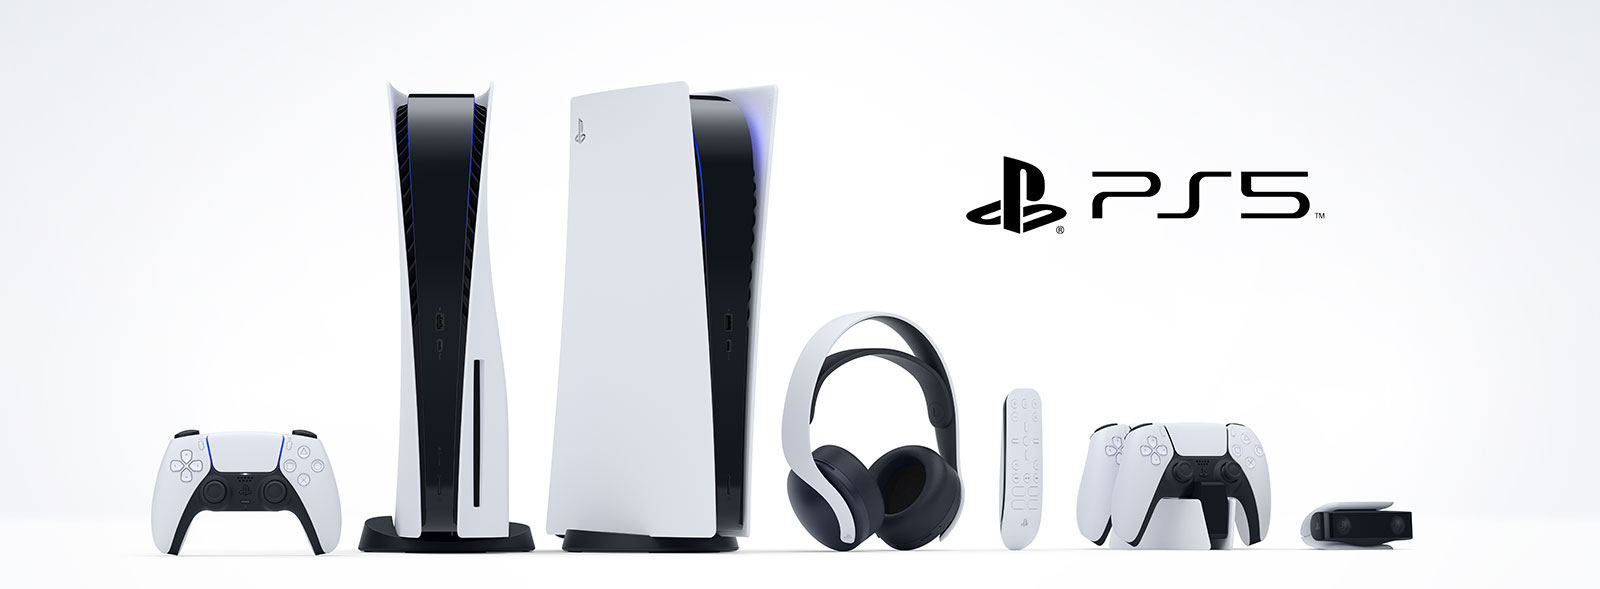 The PS5 is Coming Holiday 2020*